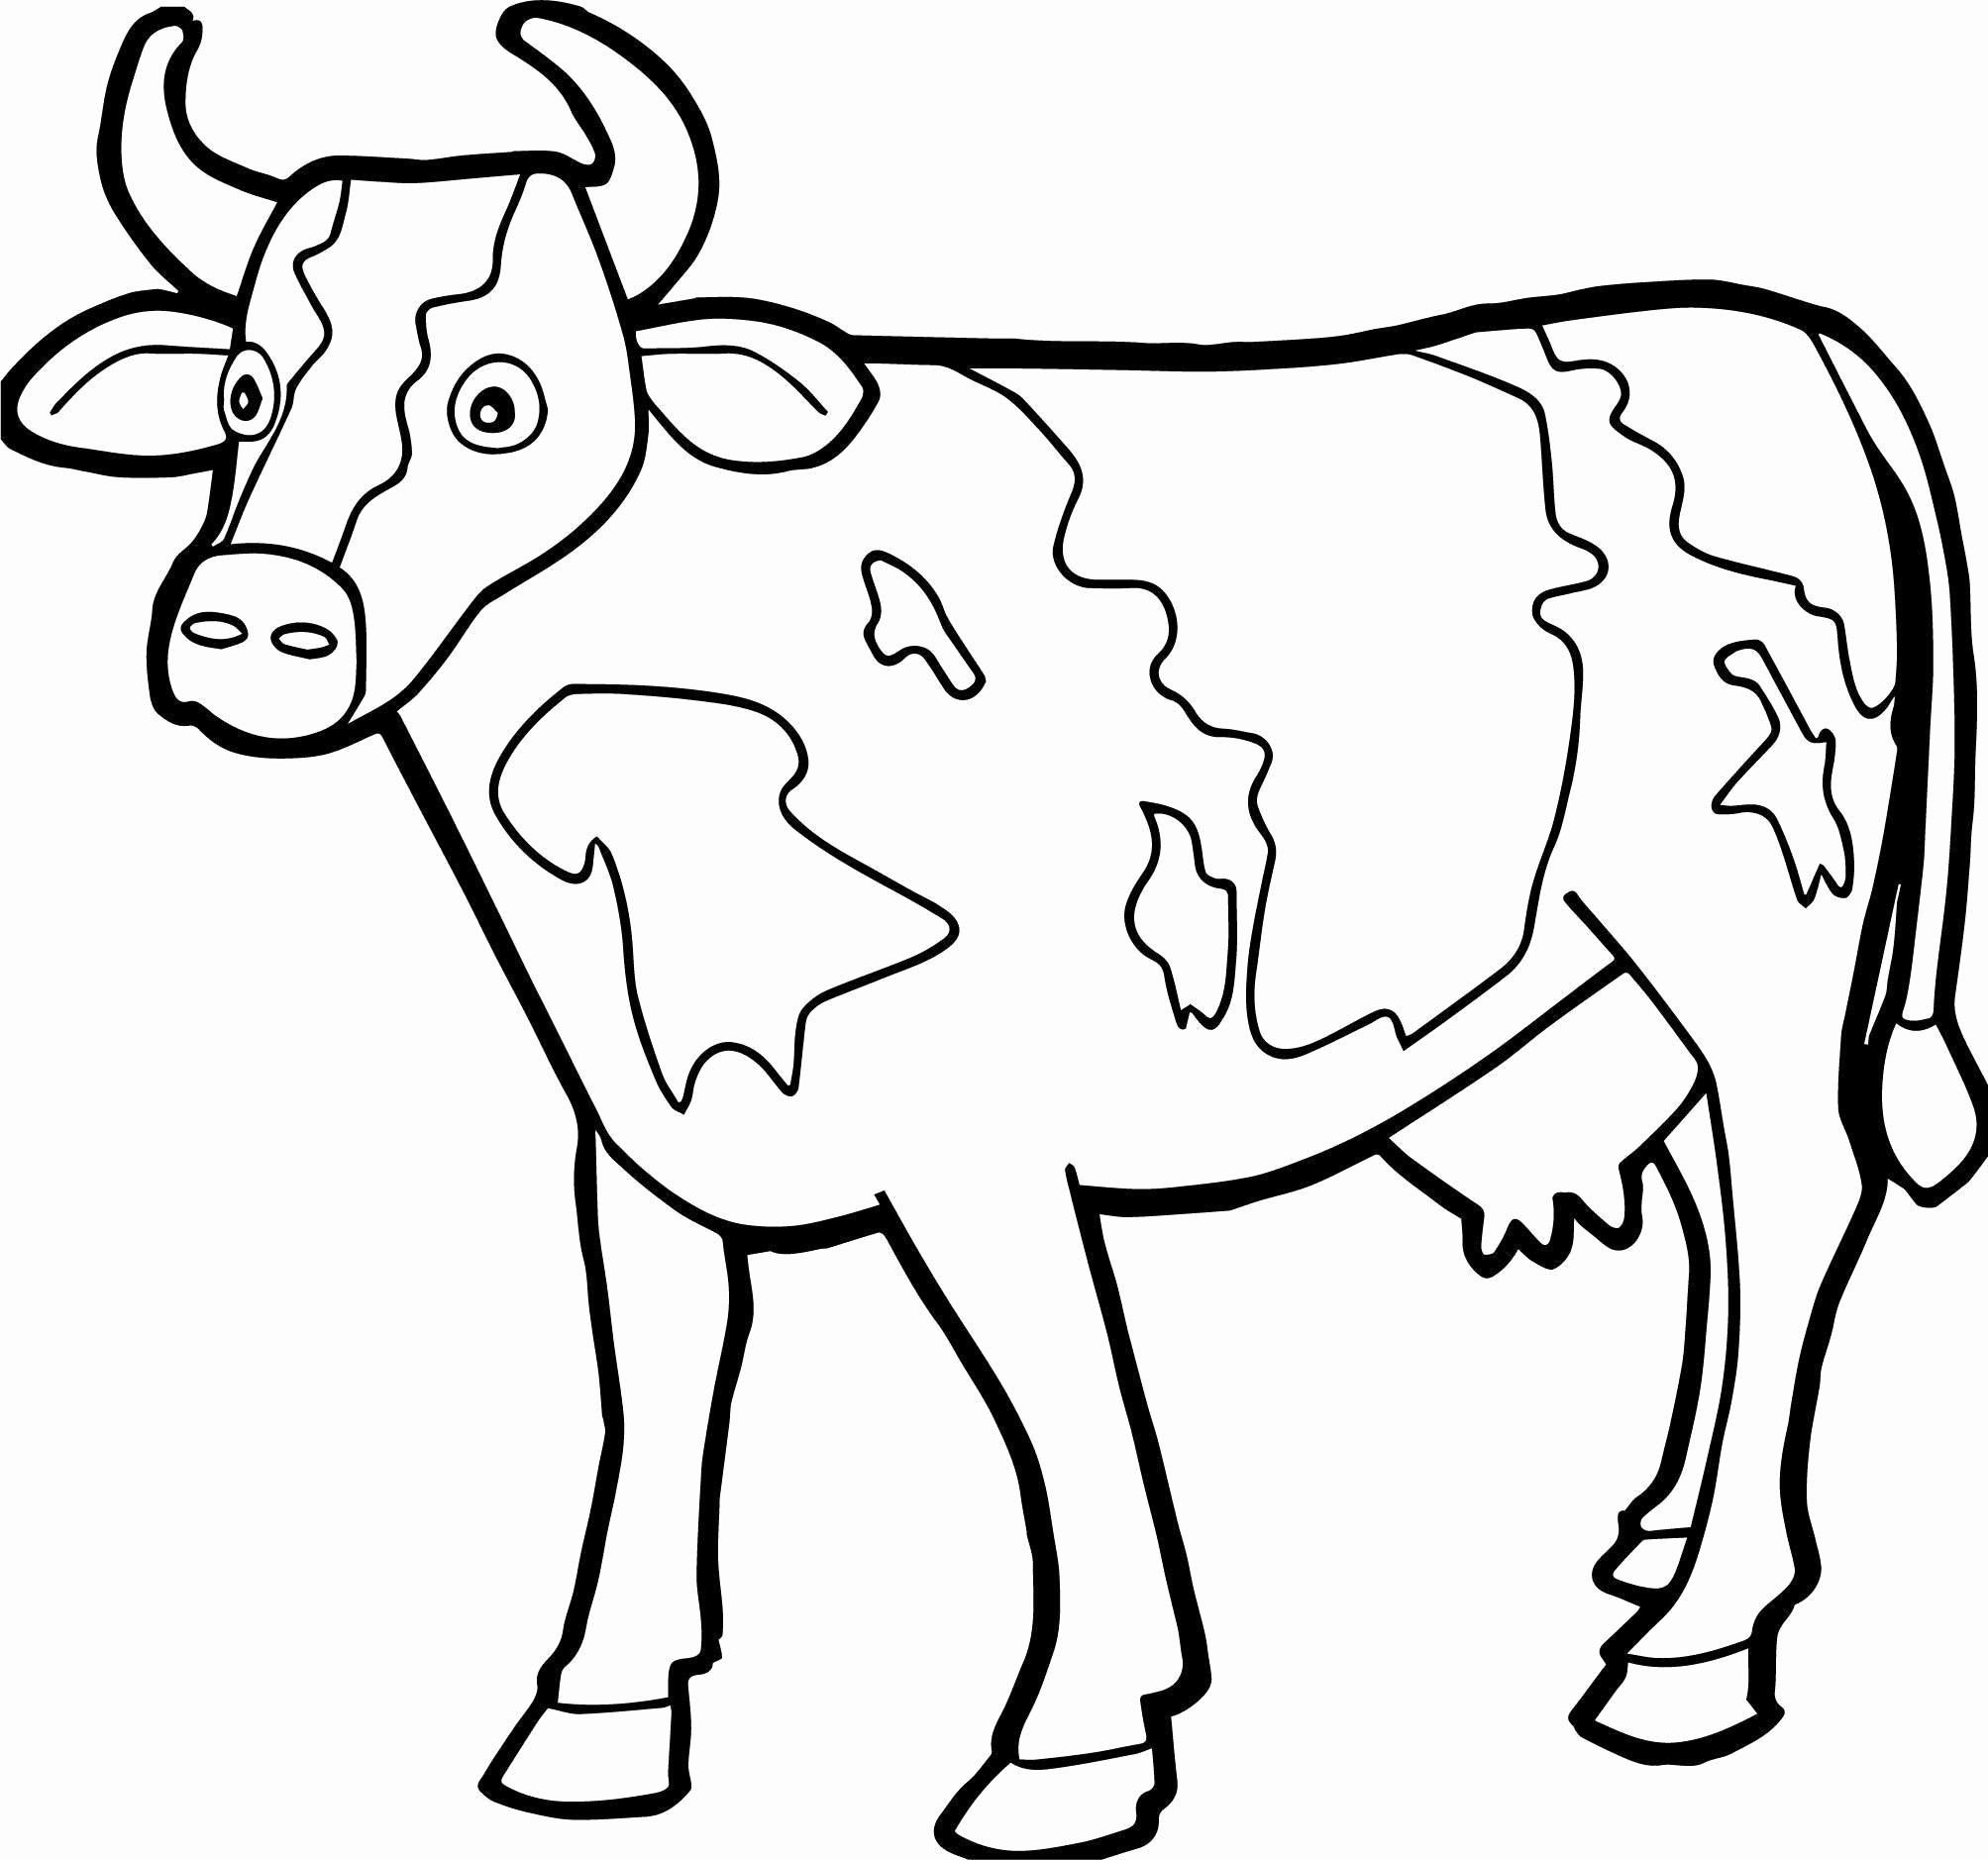 Cow Coloring Pages For Adults Cow Coloring Pages Farm Animal